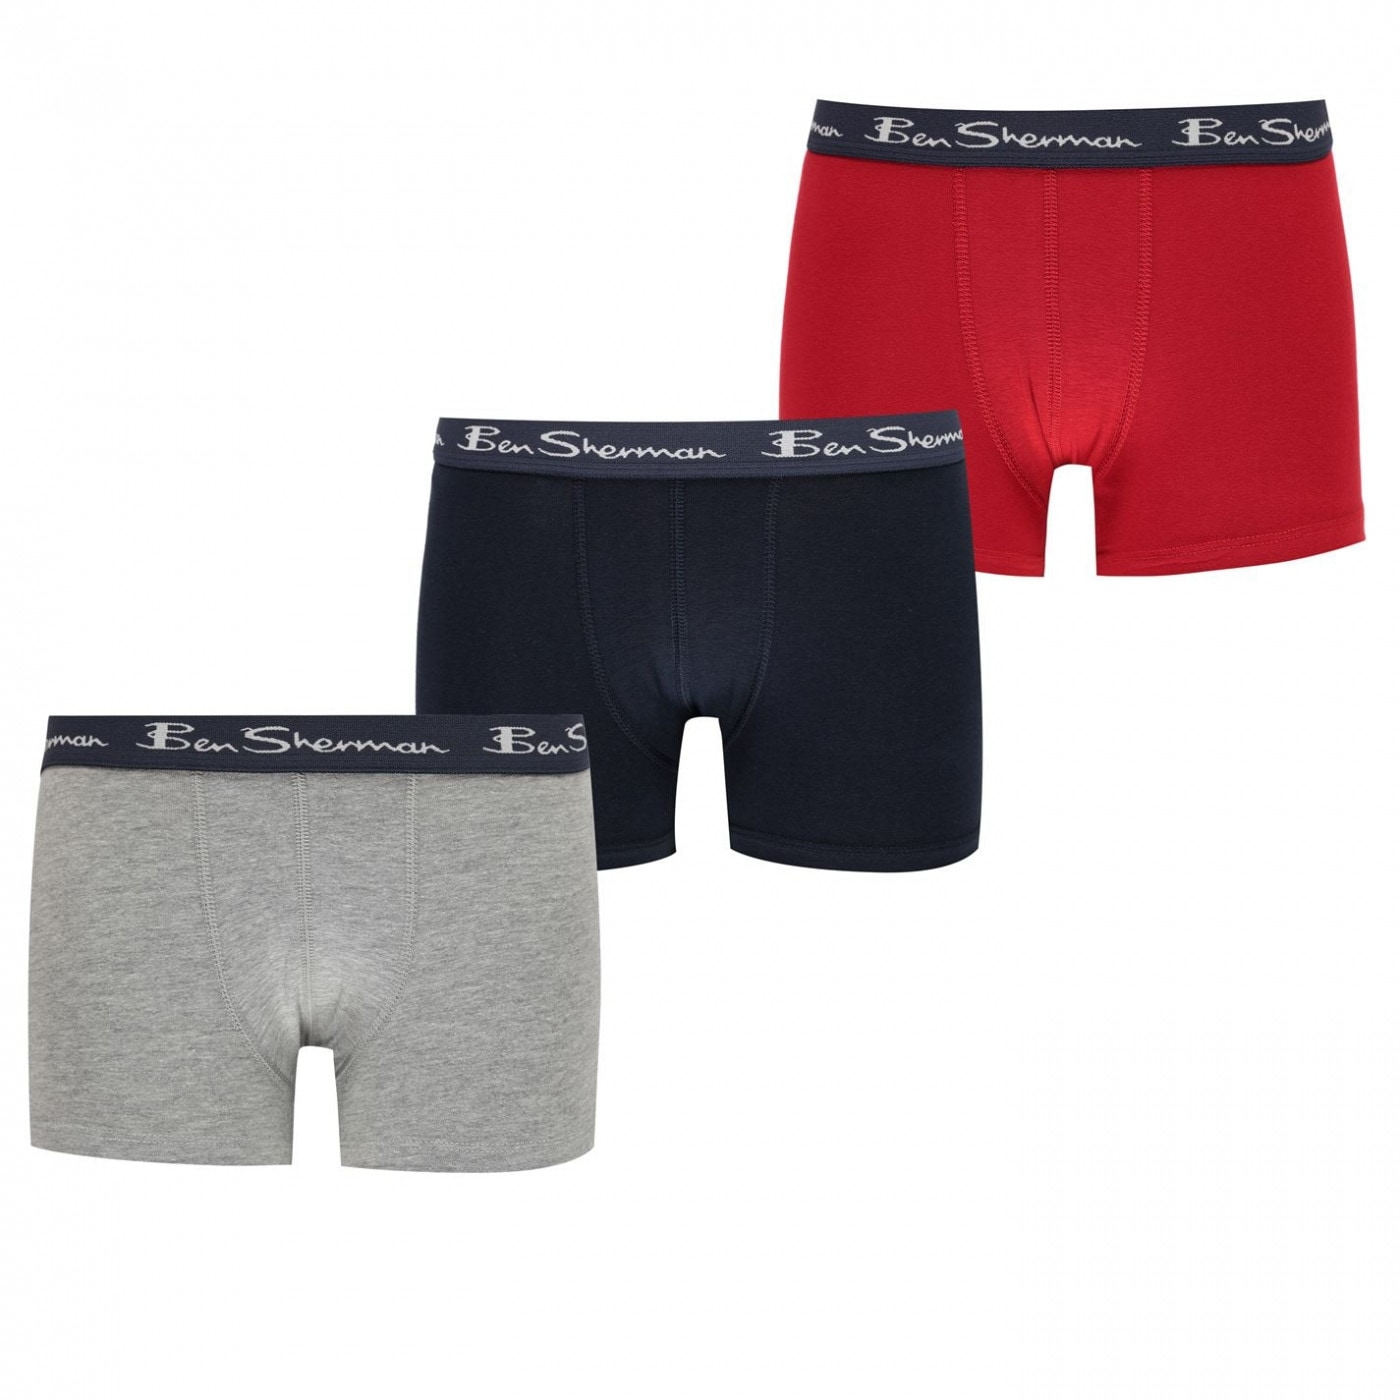 Ben Sherman 3 Pack Boxers Junior Boys